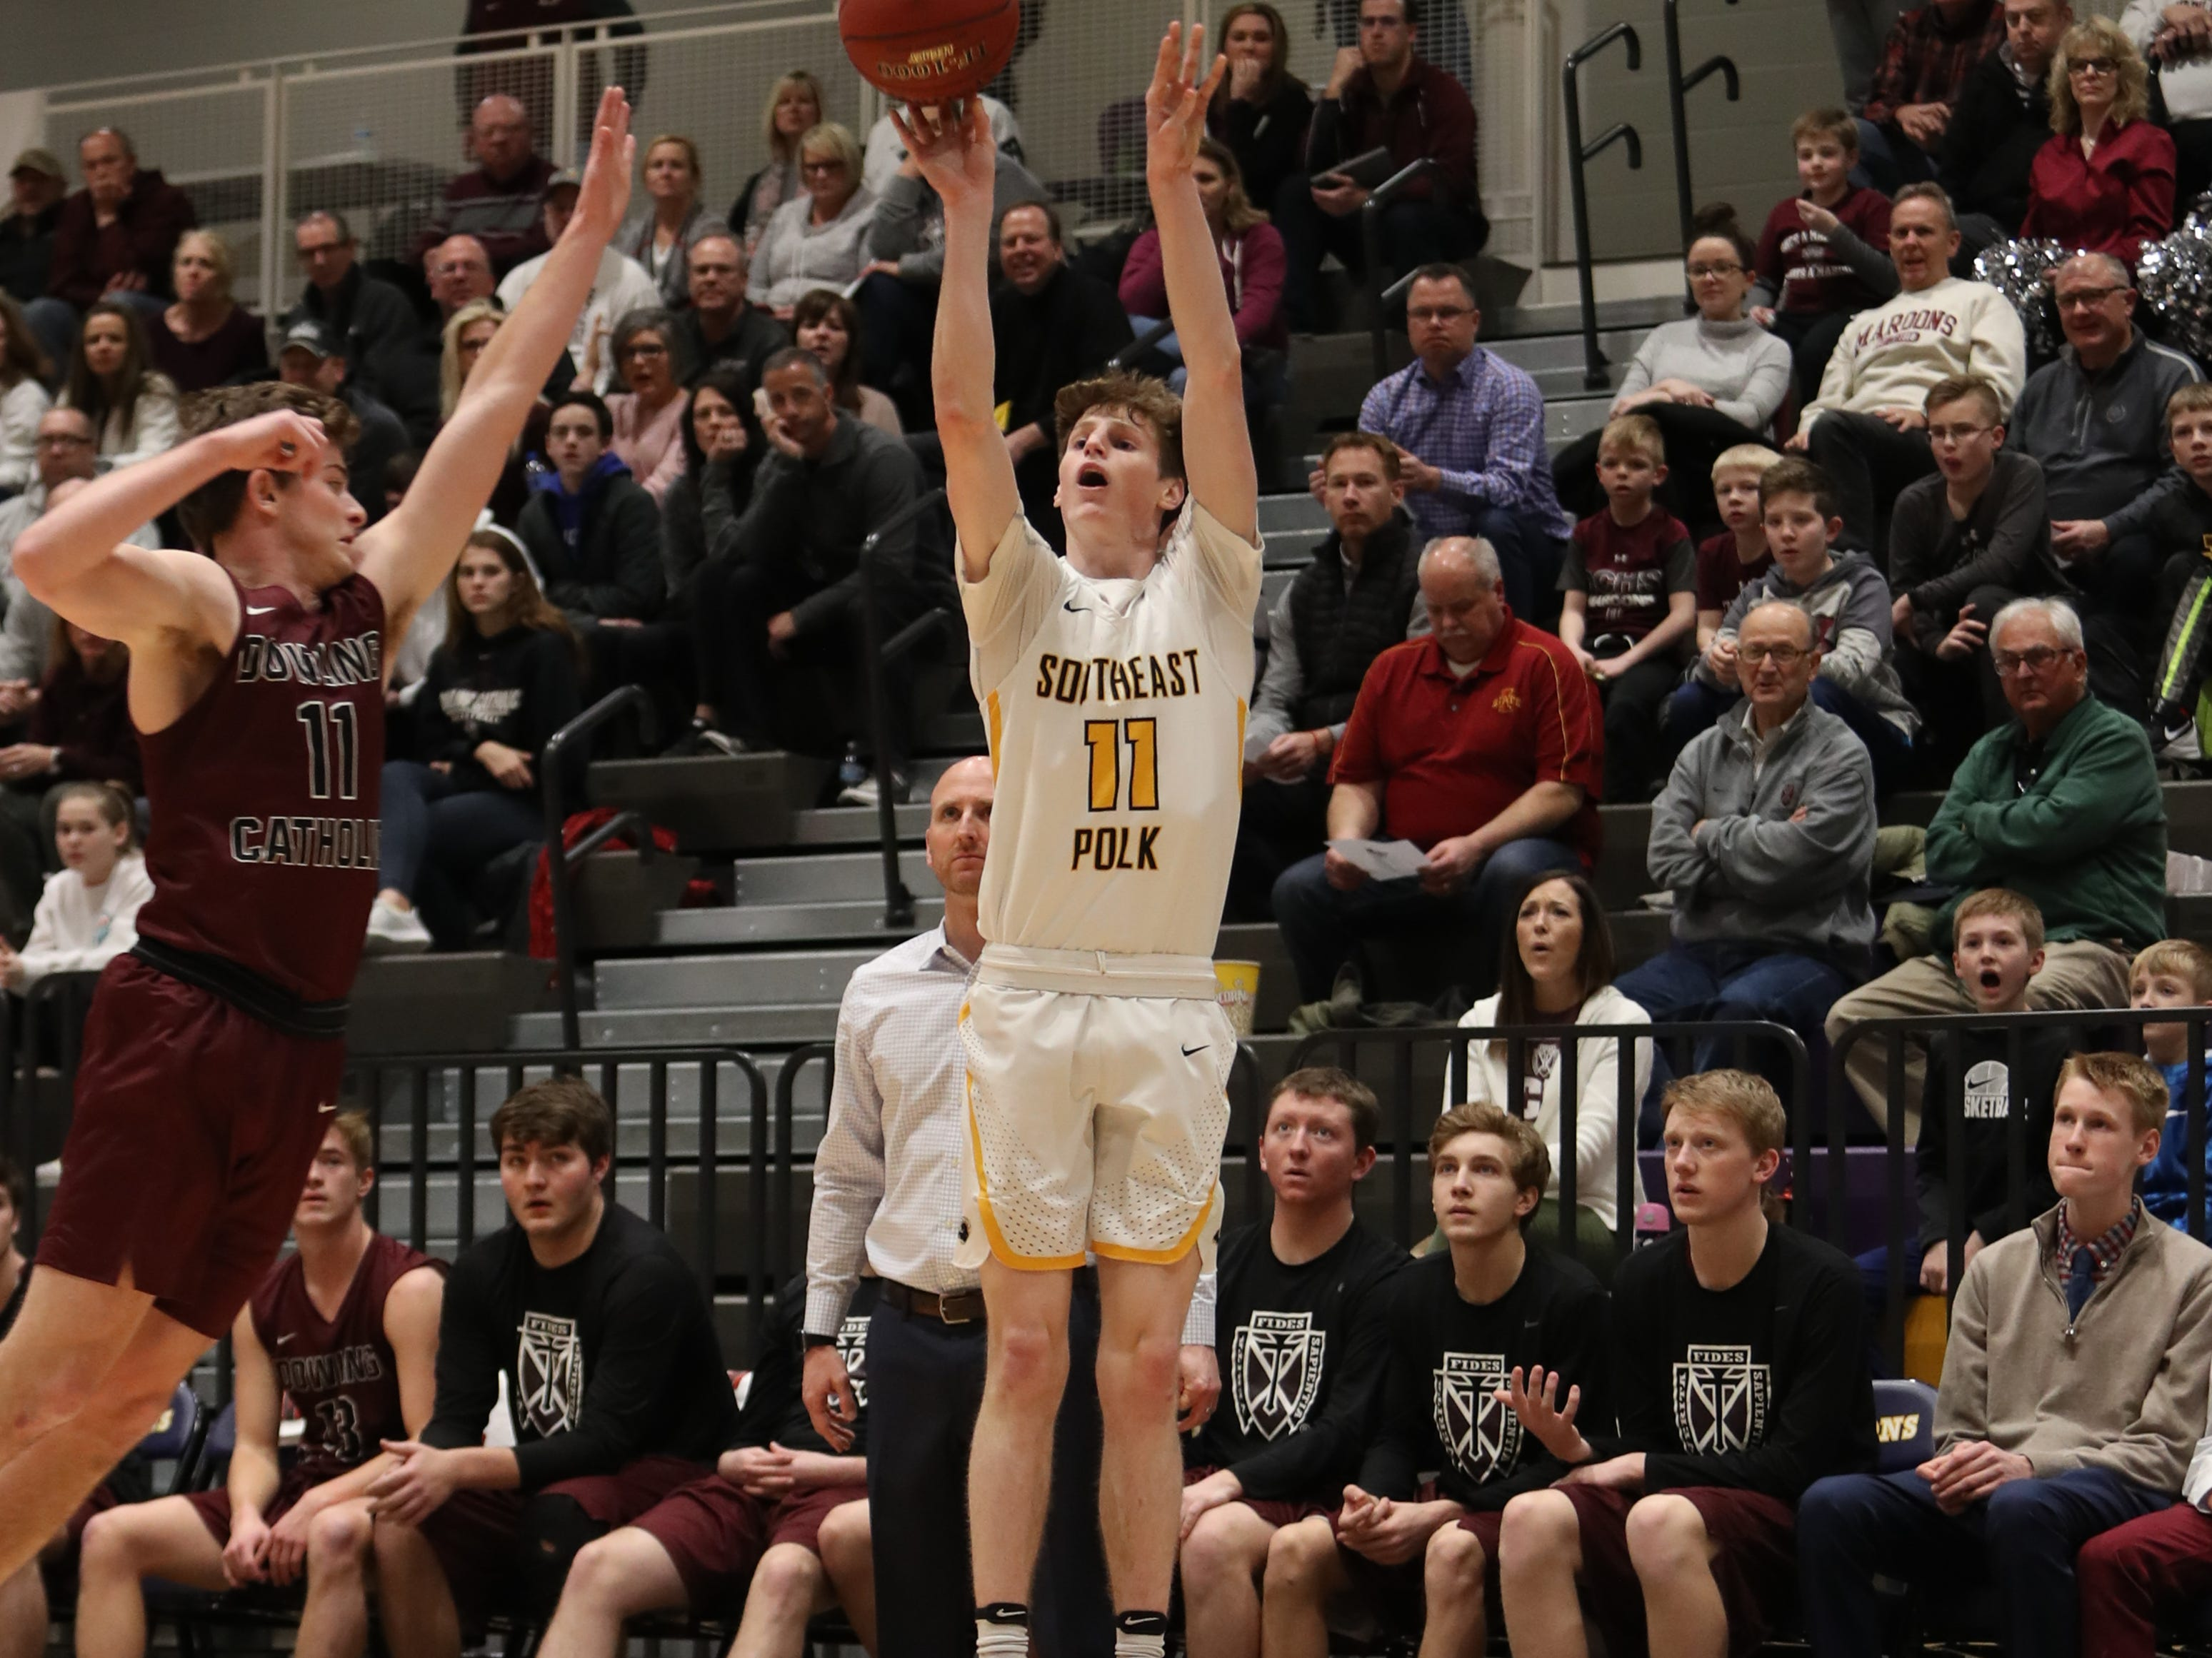 Southeast Polk's Sam Glenn (11) shoots against Dowling Catholic during their game at Johnston High School in Johnston, Iowa, on Tuesday, Feb. 26, 2019. Dowling won the game 44-40 to advance to state.